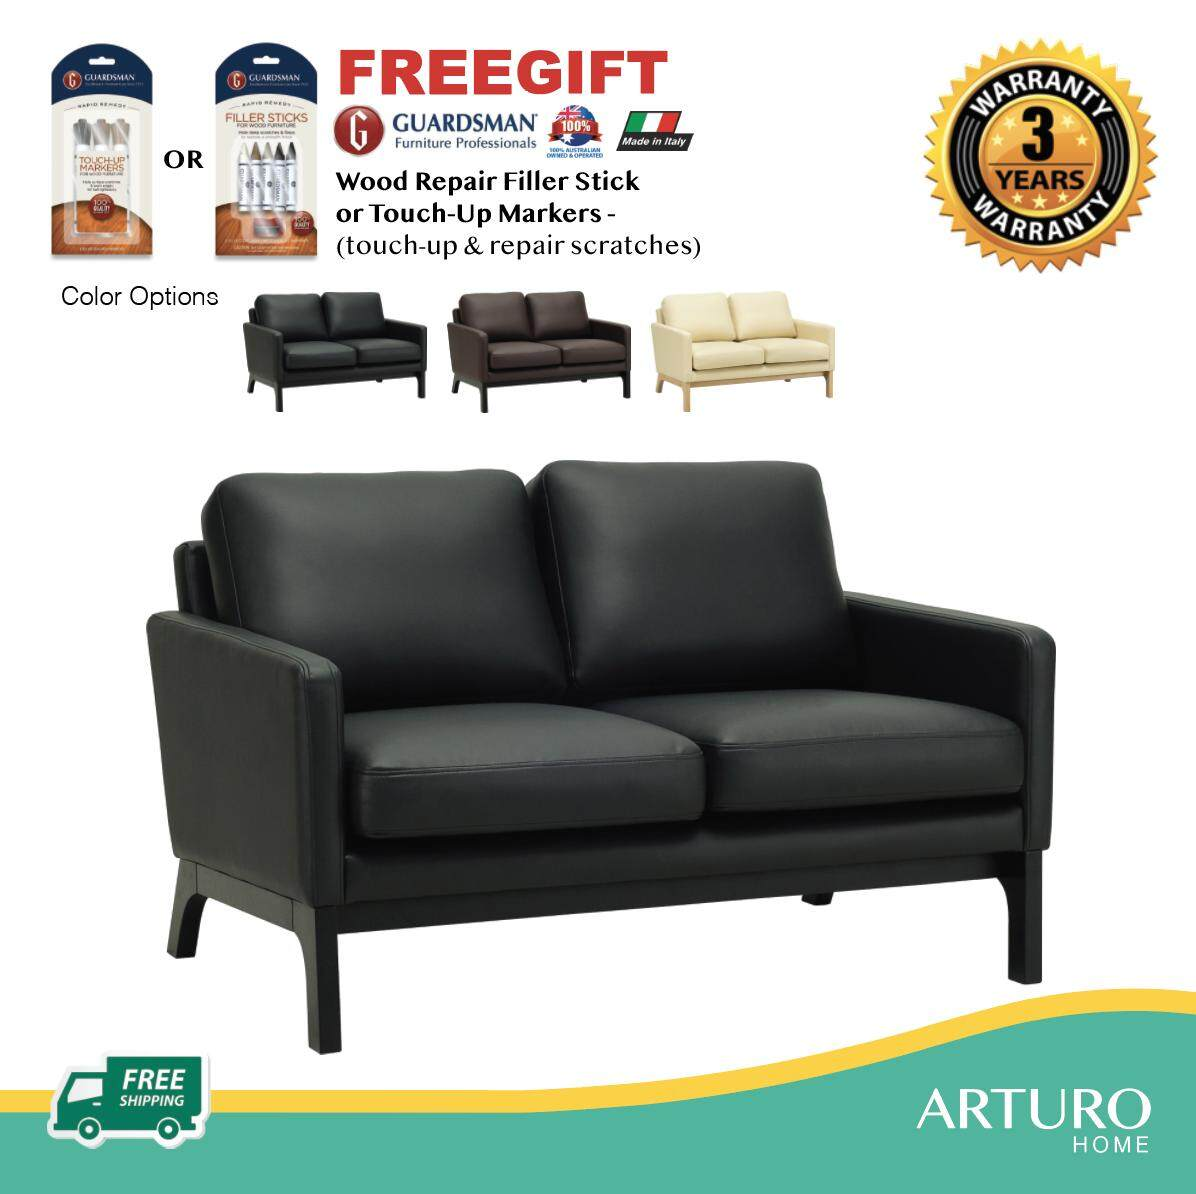 Macam Sofa Arturo Cove 2 Seater Sofa Love Seat Pvc Sofa Twin Seater Sofa Free Shipping To West Malaysia